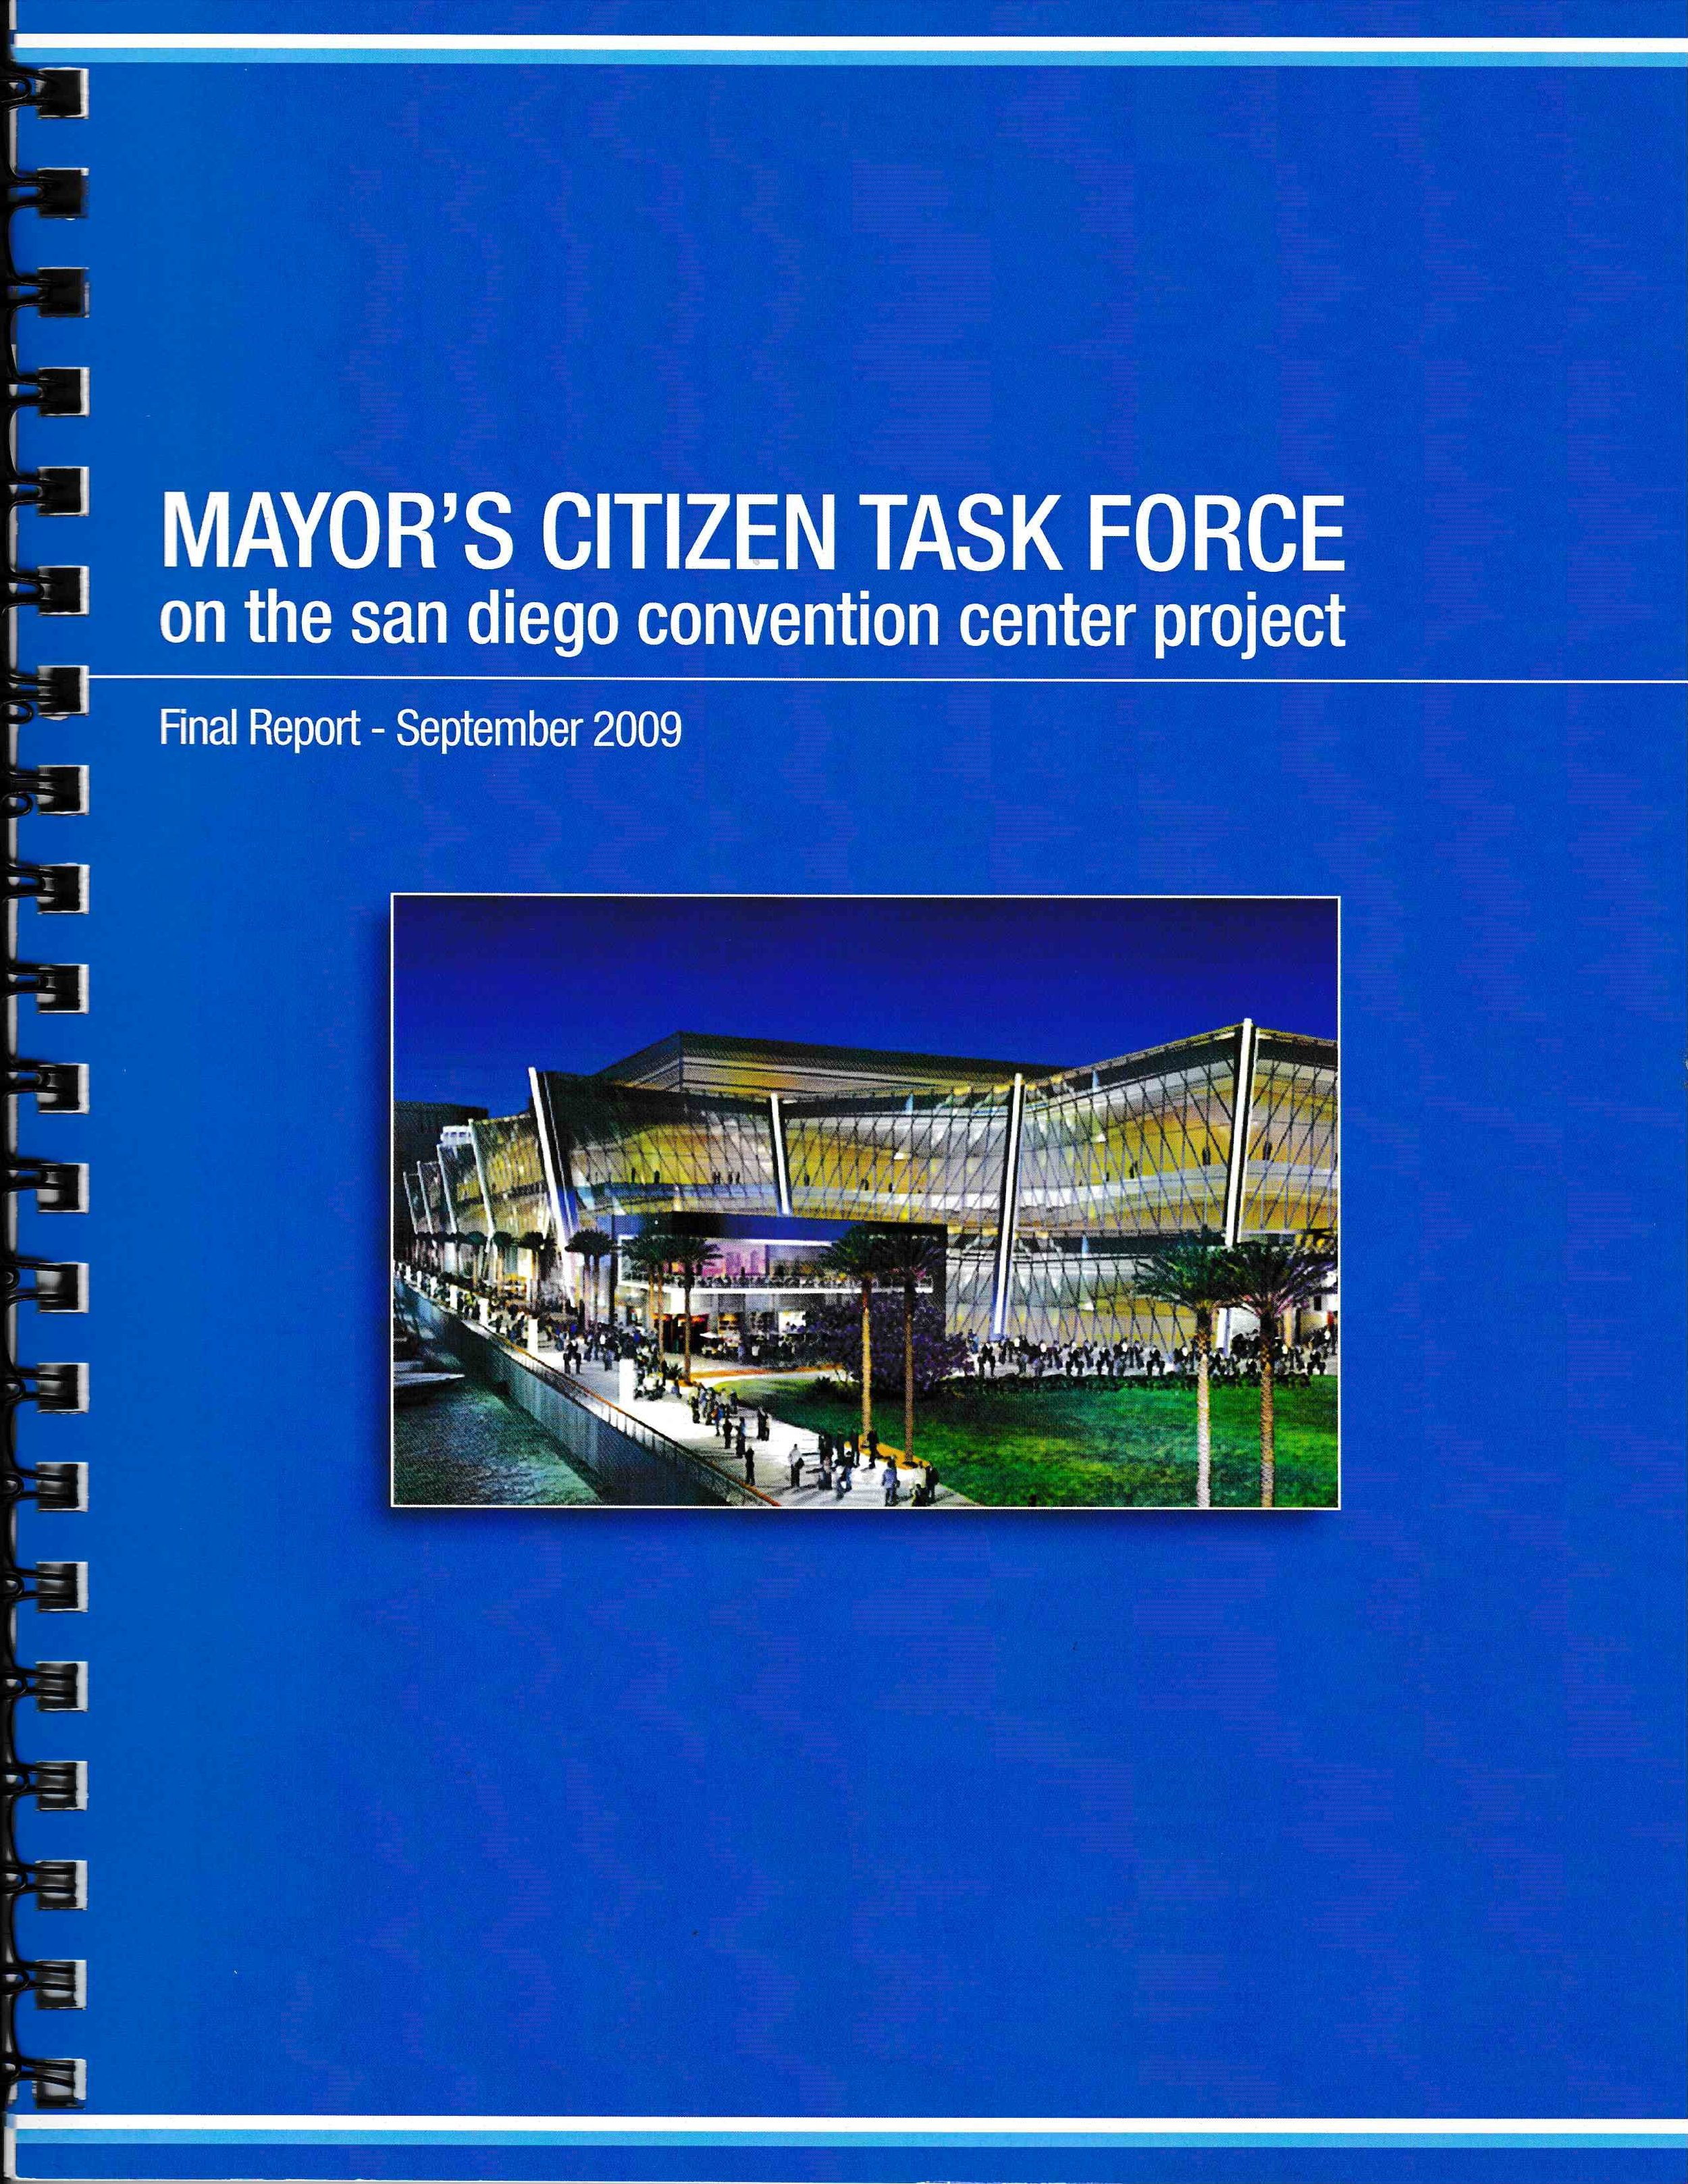 Staff Lead | Mayor's Citizens Task Force on the San Diego Convention Center Expansion Project - In January 2009, Mayor Jerry Sanders launched a citizens task force to explore the expansion of the convention center. Comprised of 12 community leaders and stakeholder representatives from business, hospitality, labor, environment, and tourism the task force met over 9 months and in September 2009 issued a final report recommending expansion of the facility. I served as the staff lead to the task force and worked directly with the co-chairs, members, media, community, and elected officials.